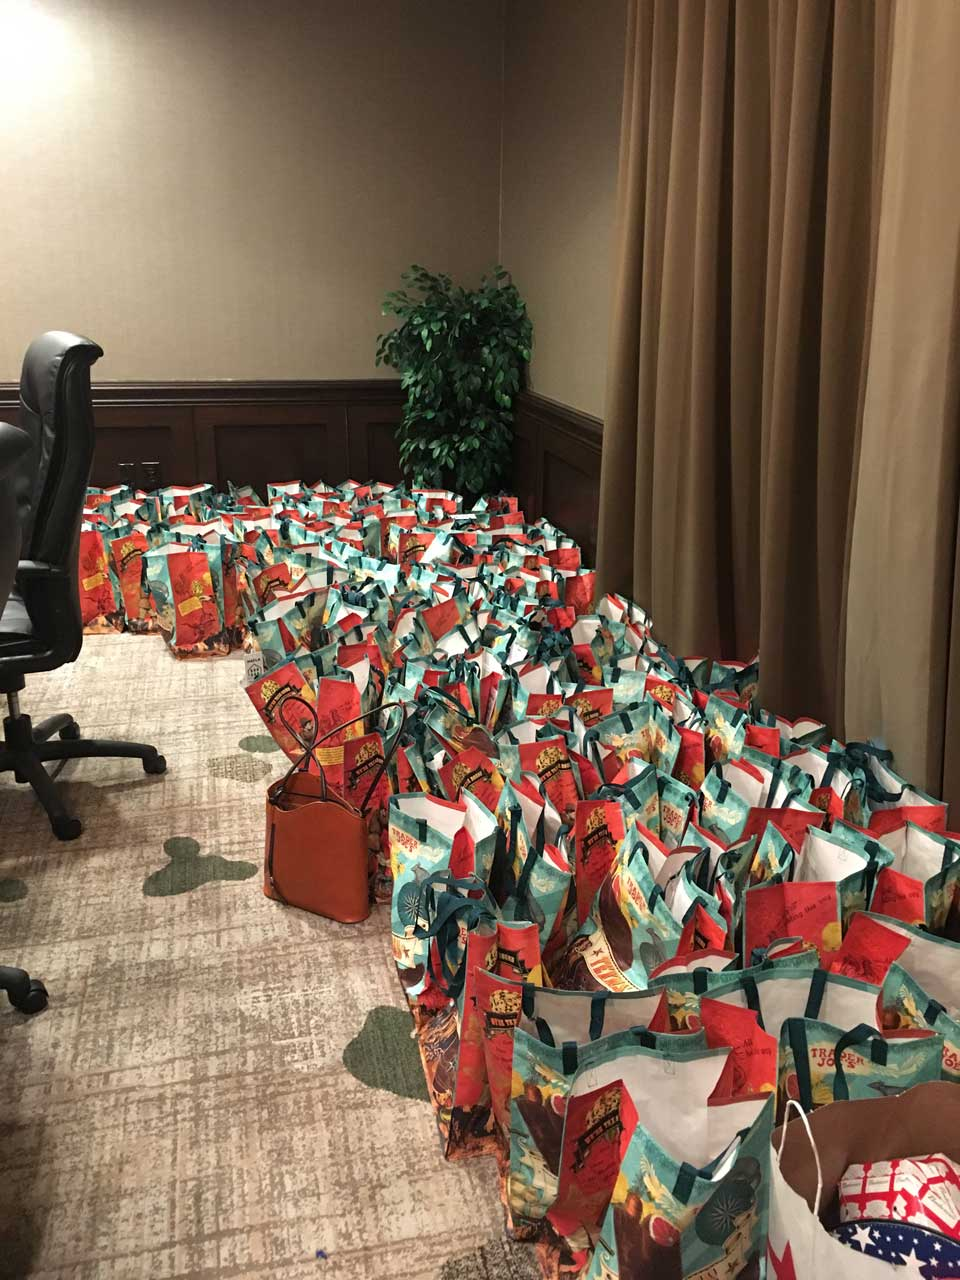 Look at all those Gift Bags!